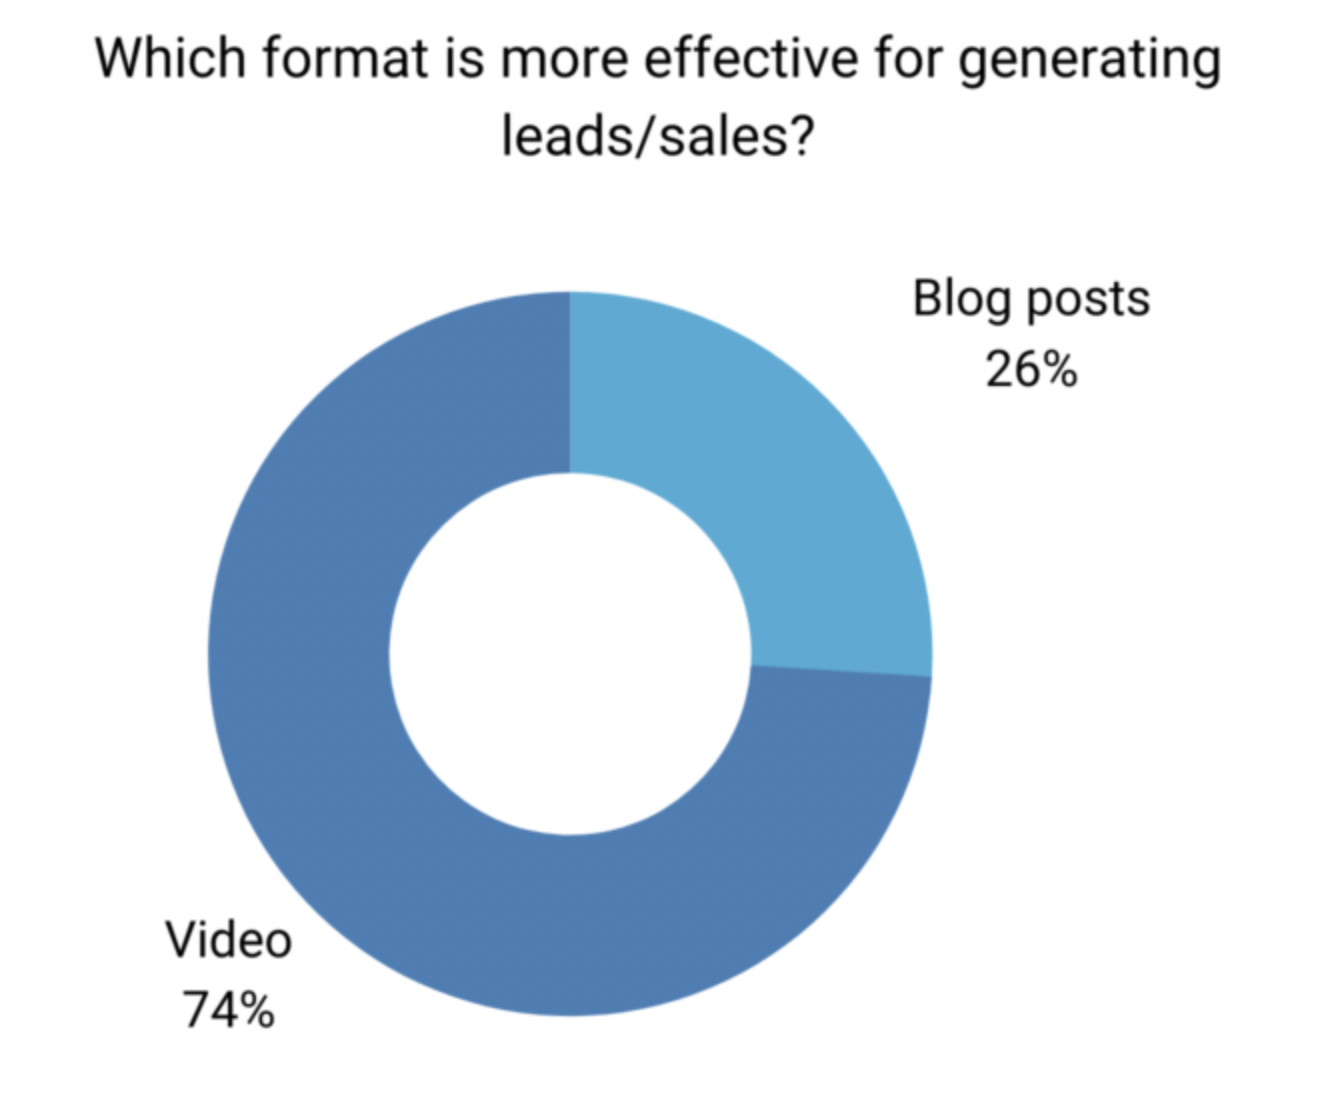 A graph showing the effectiveness of video compared to blog posts